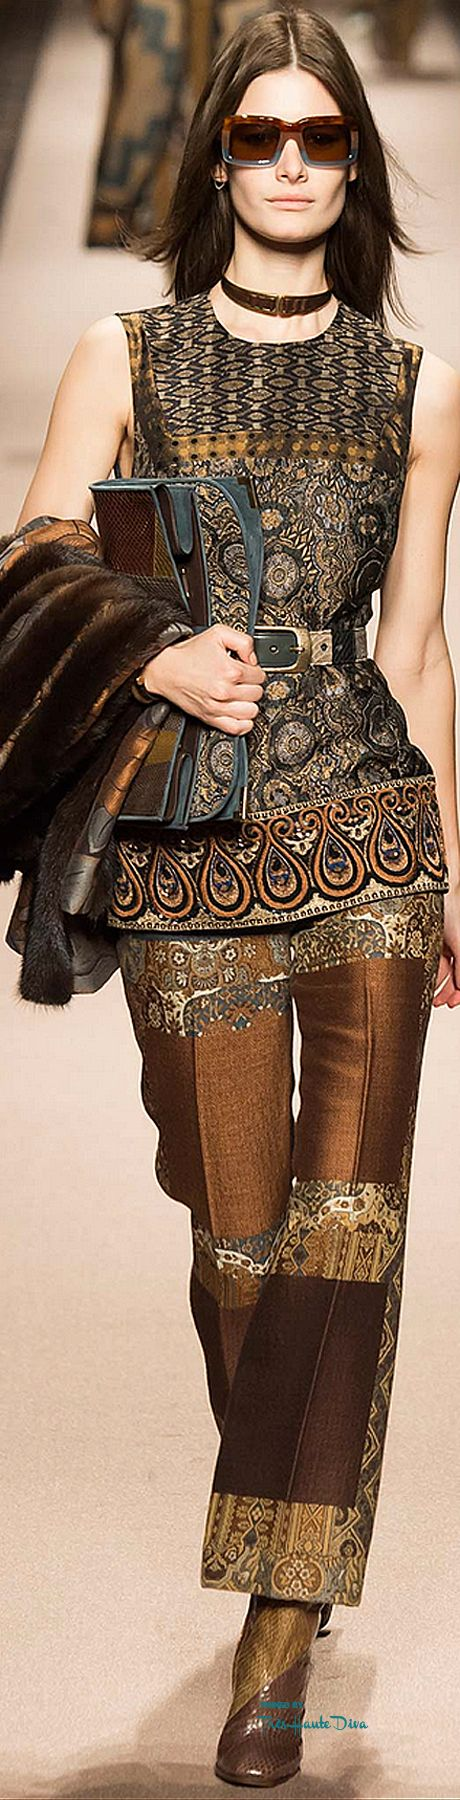 #MFW Etro Fall 2015 RTW ♔THD♔   Not sure about the pants but I love the top!   fall fashion 2015   www.endorajewellery.etsy.com